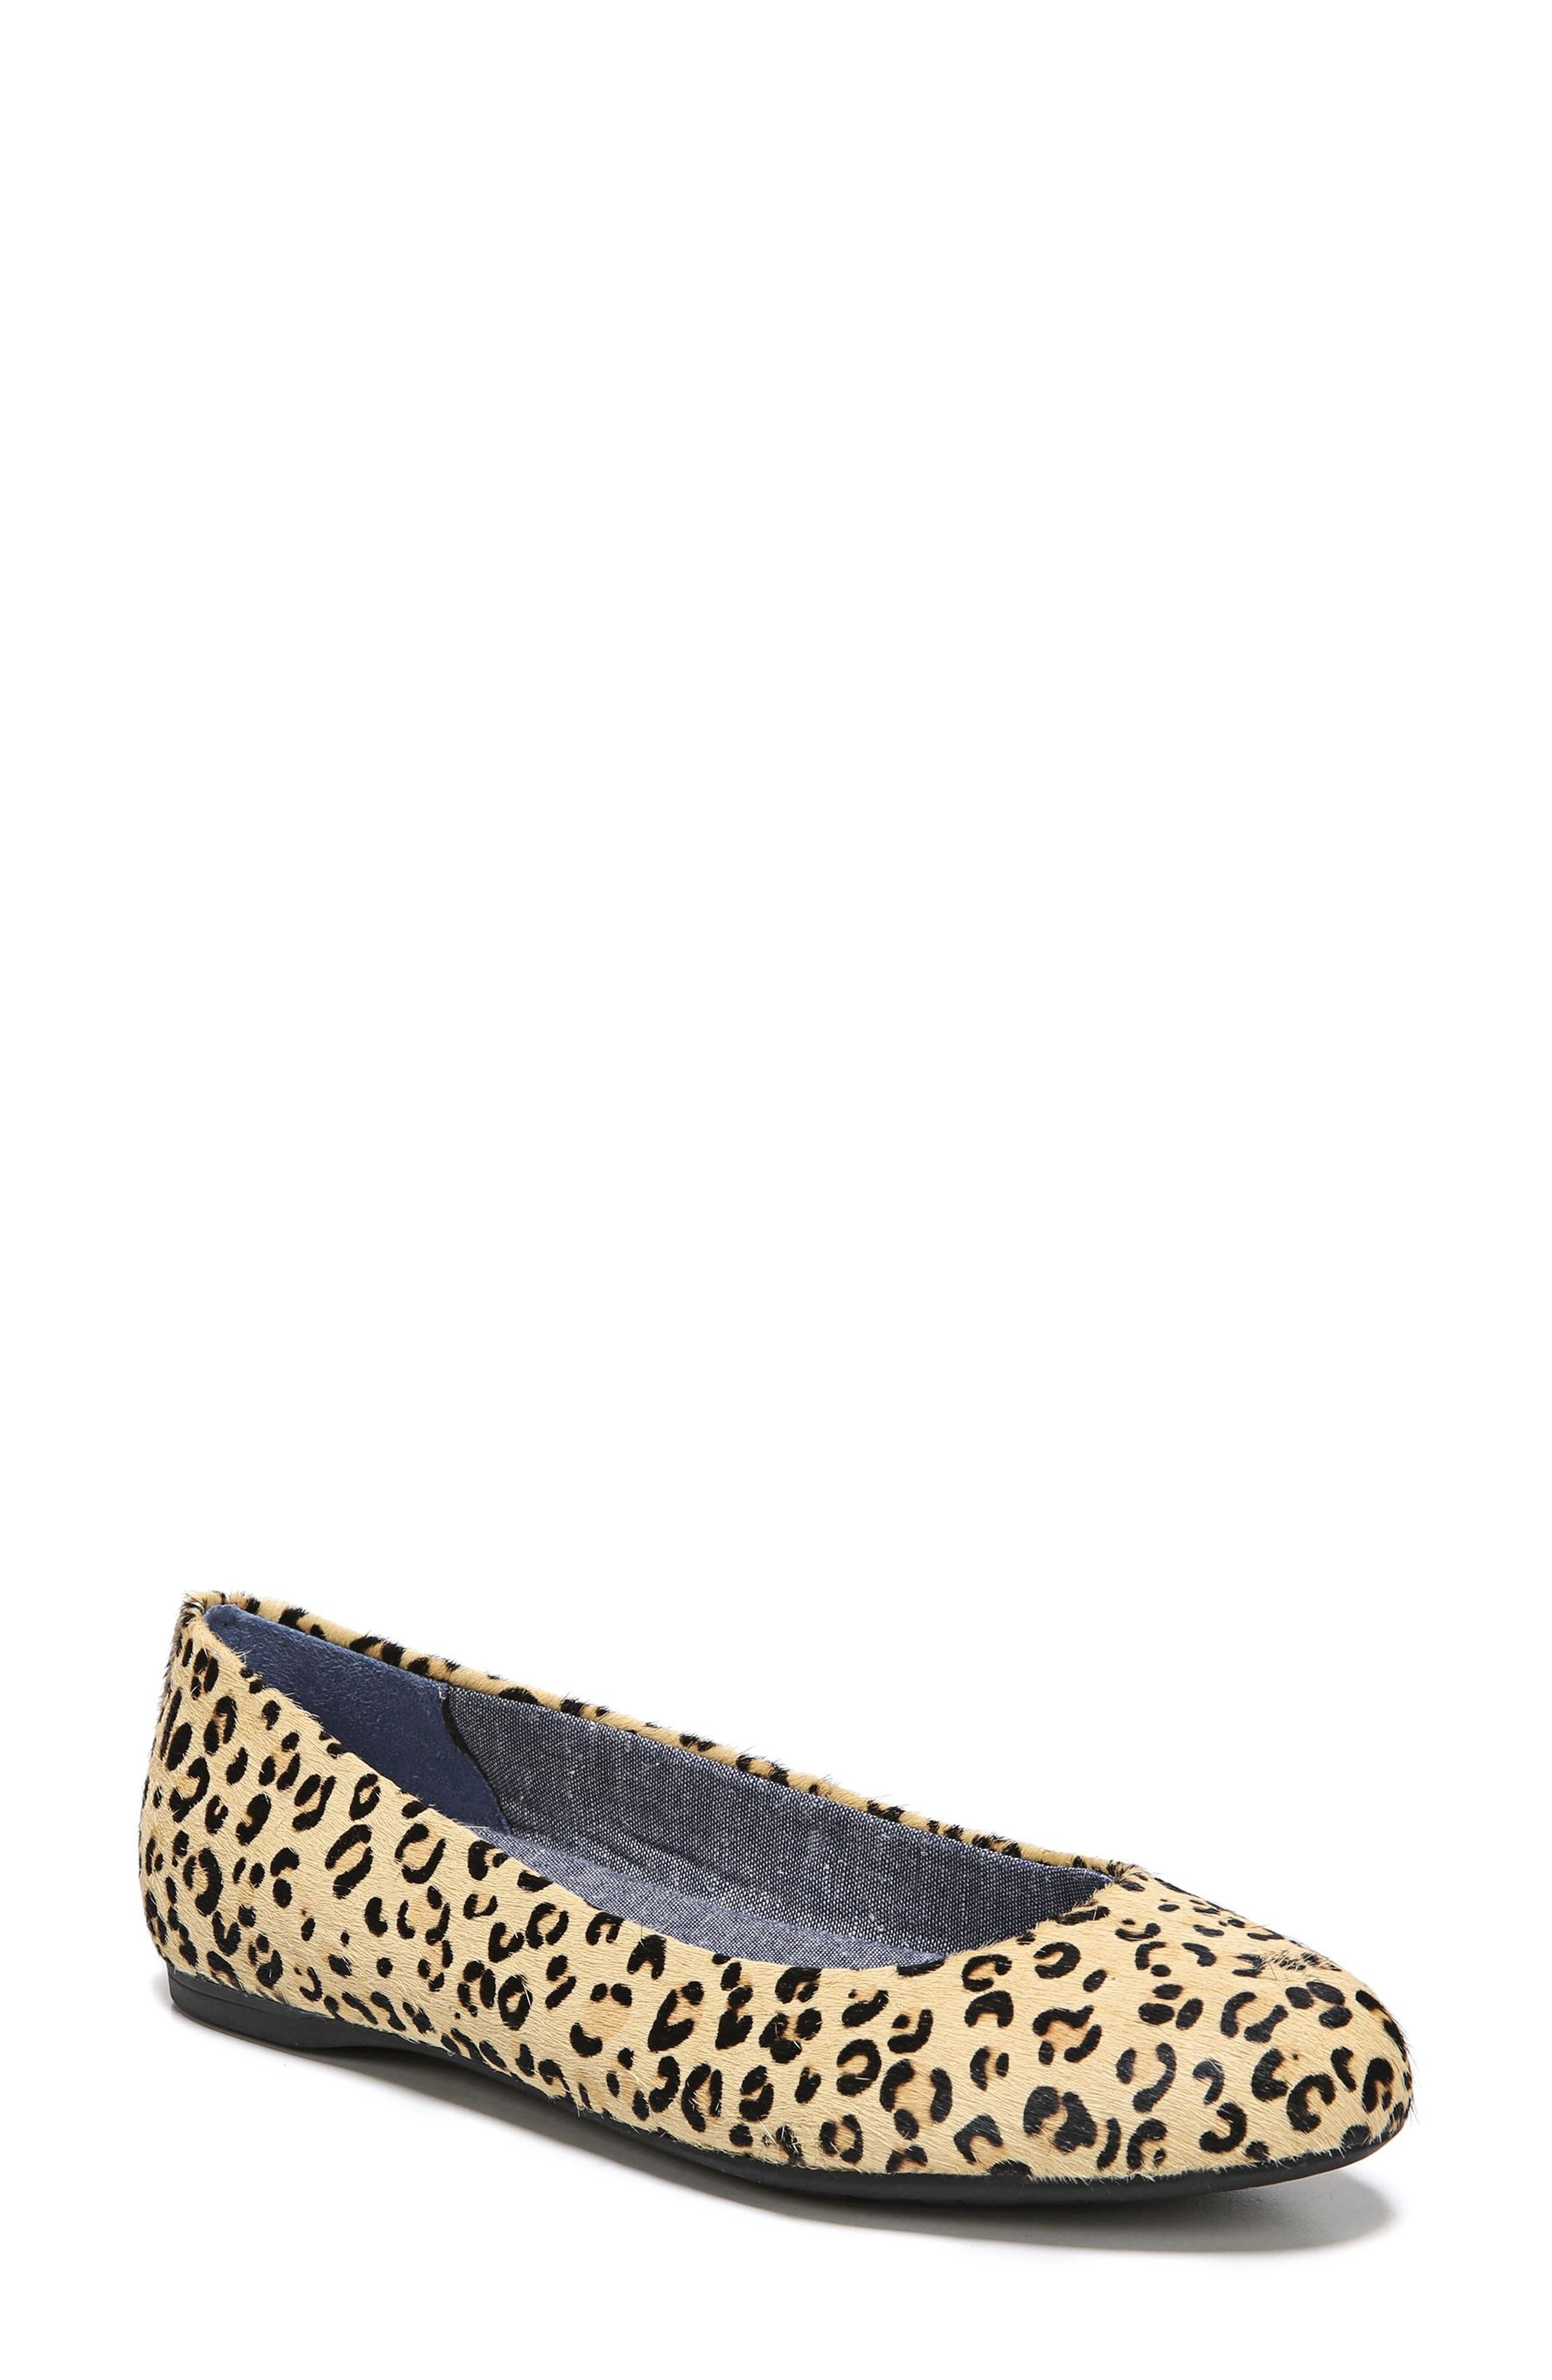 Giorgie Flat, Main, color, BLACK LEOPARD CALF HAIR